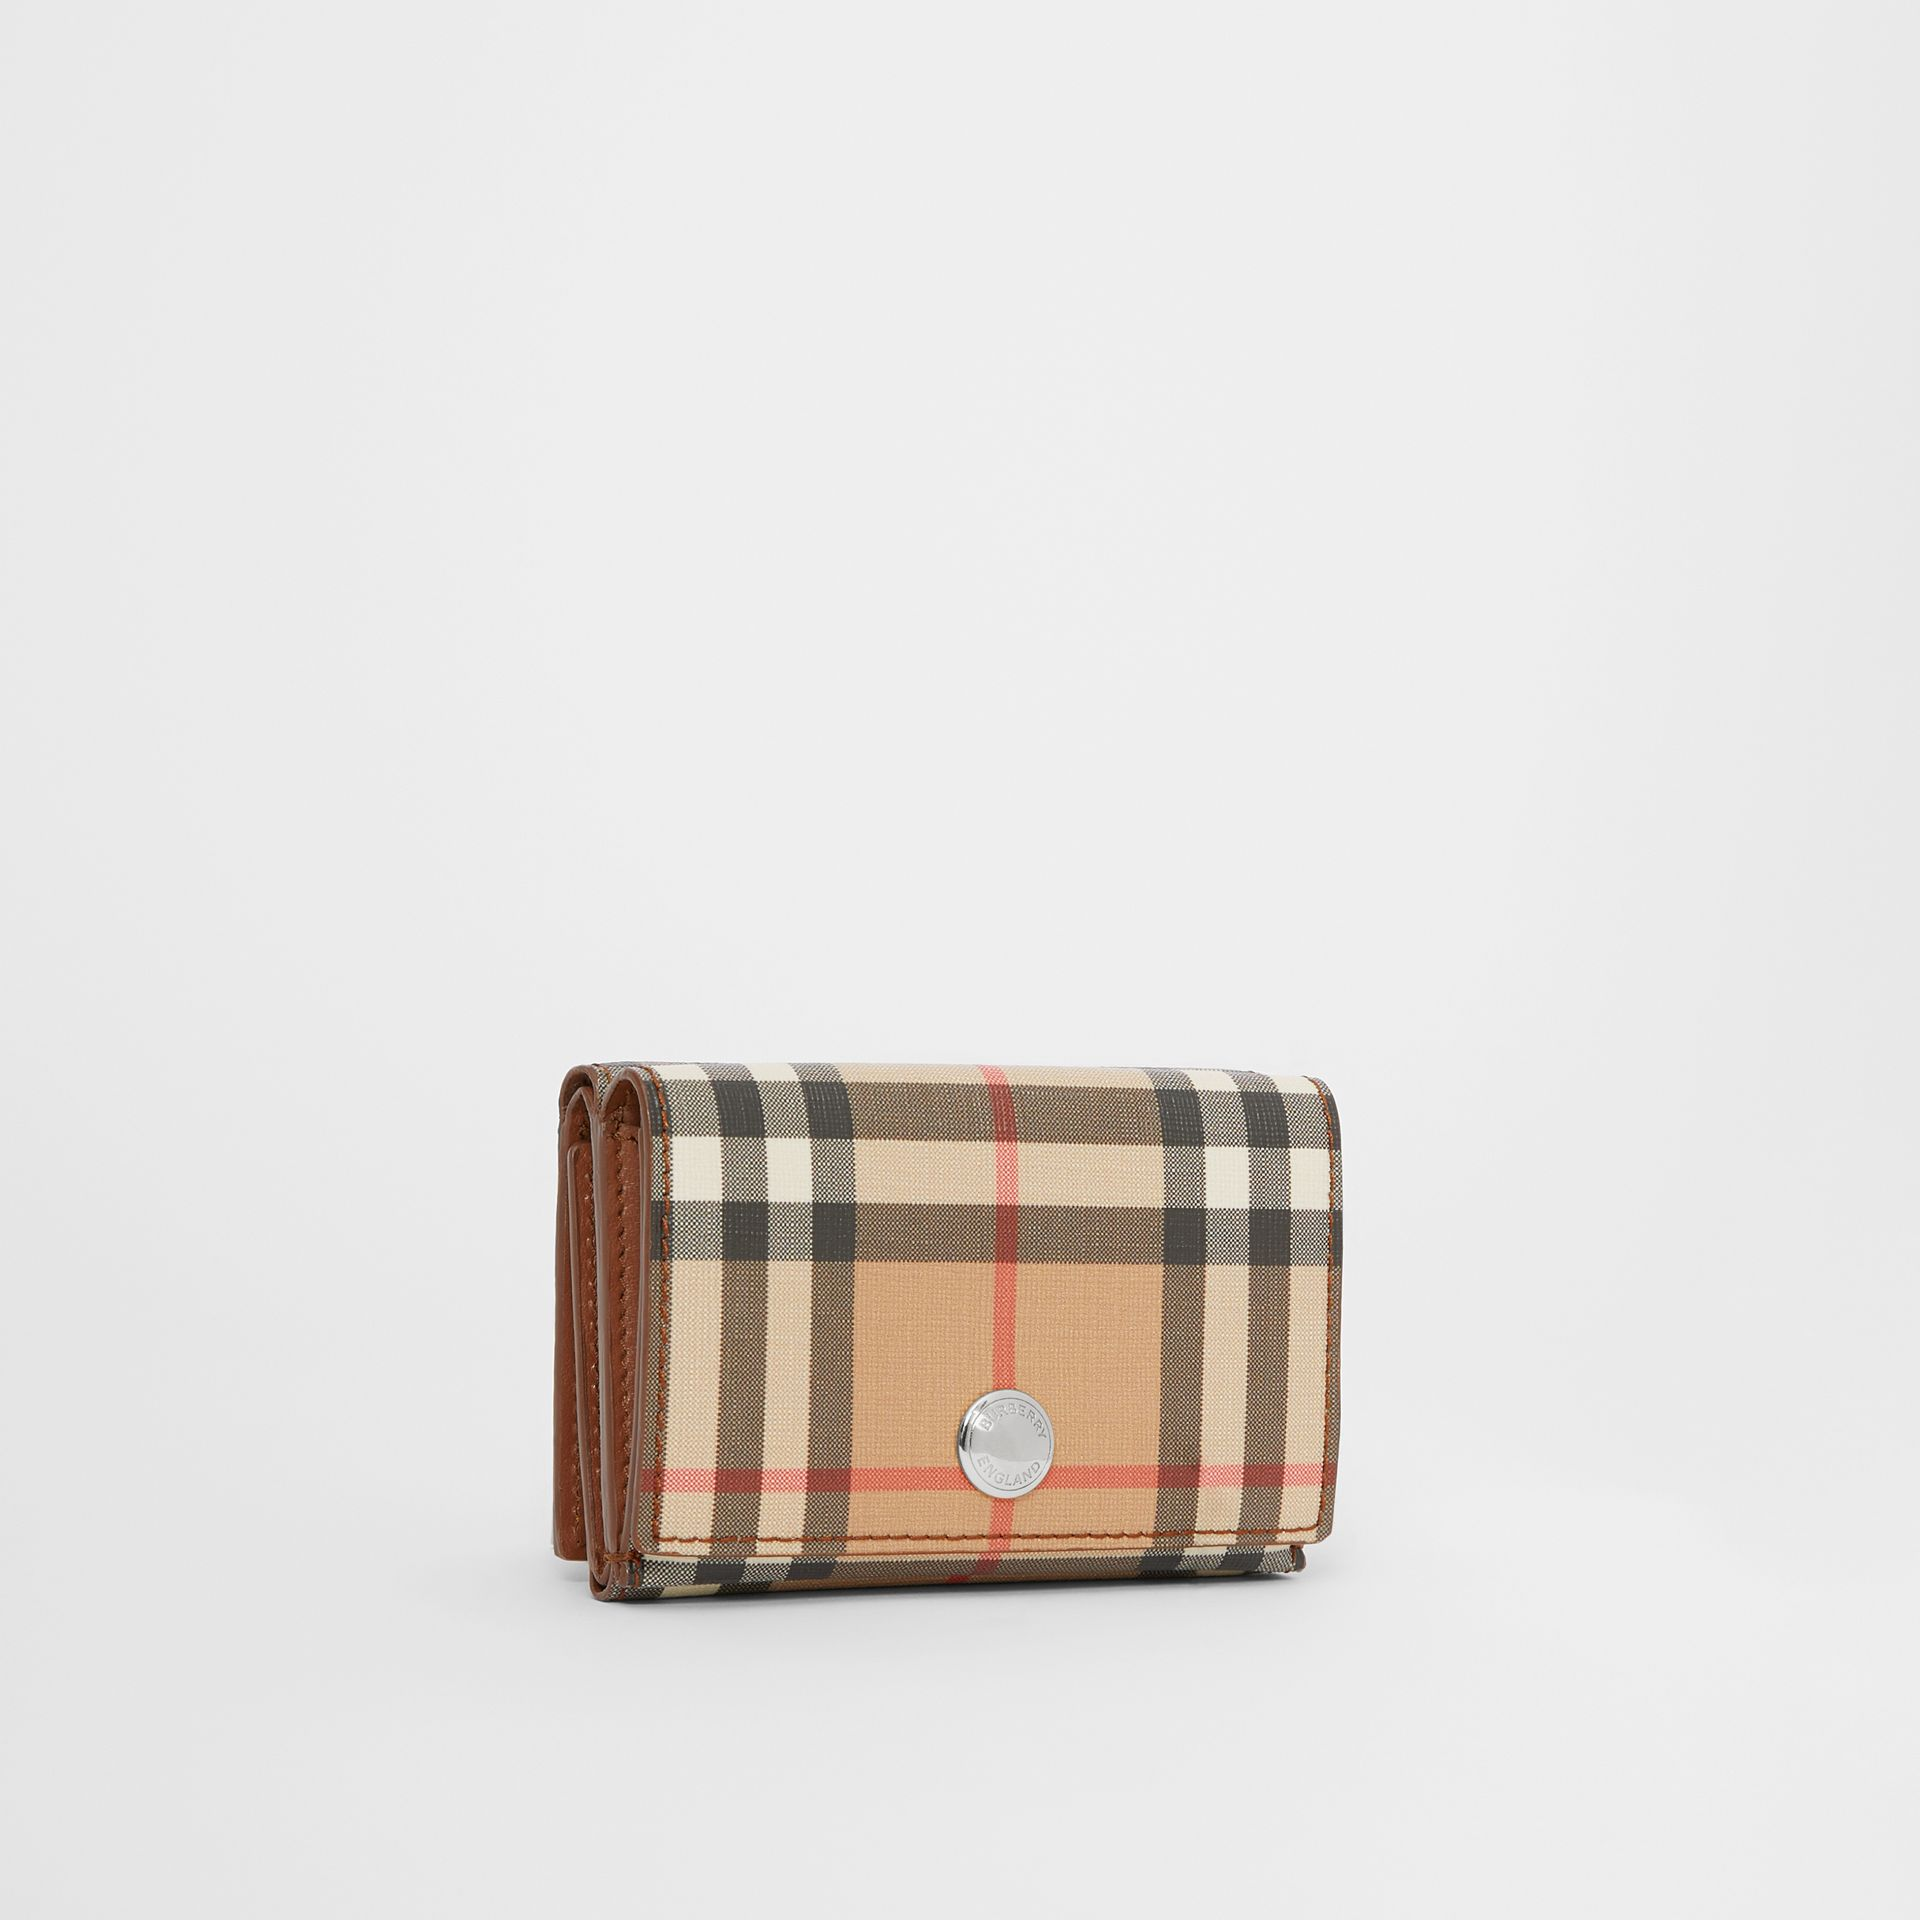 Small Vintage Check E-canvas Folding Wallet in Malt Brown - Women | Burberry - gallery image 4